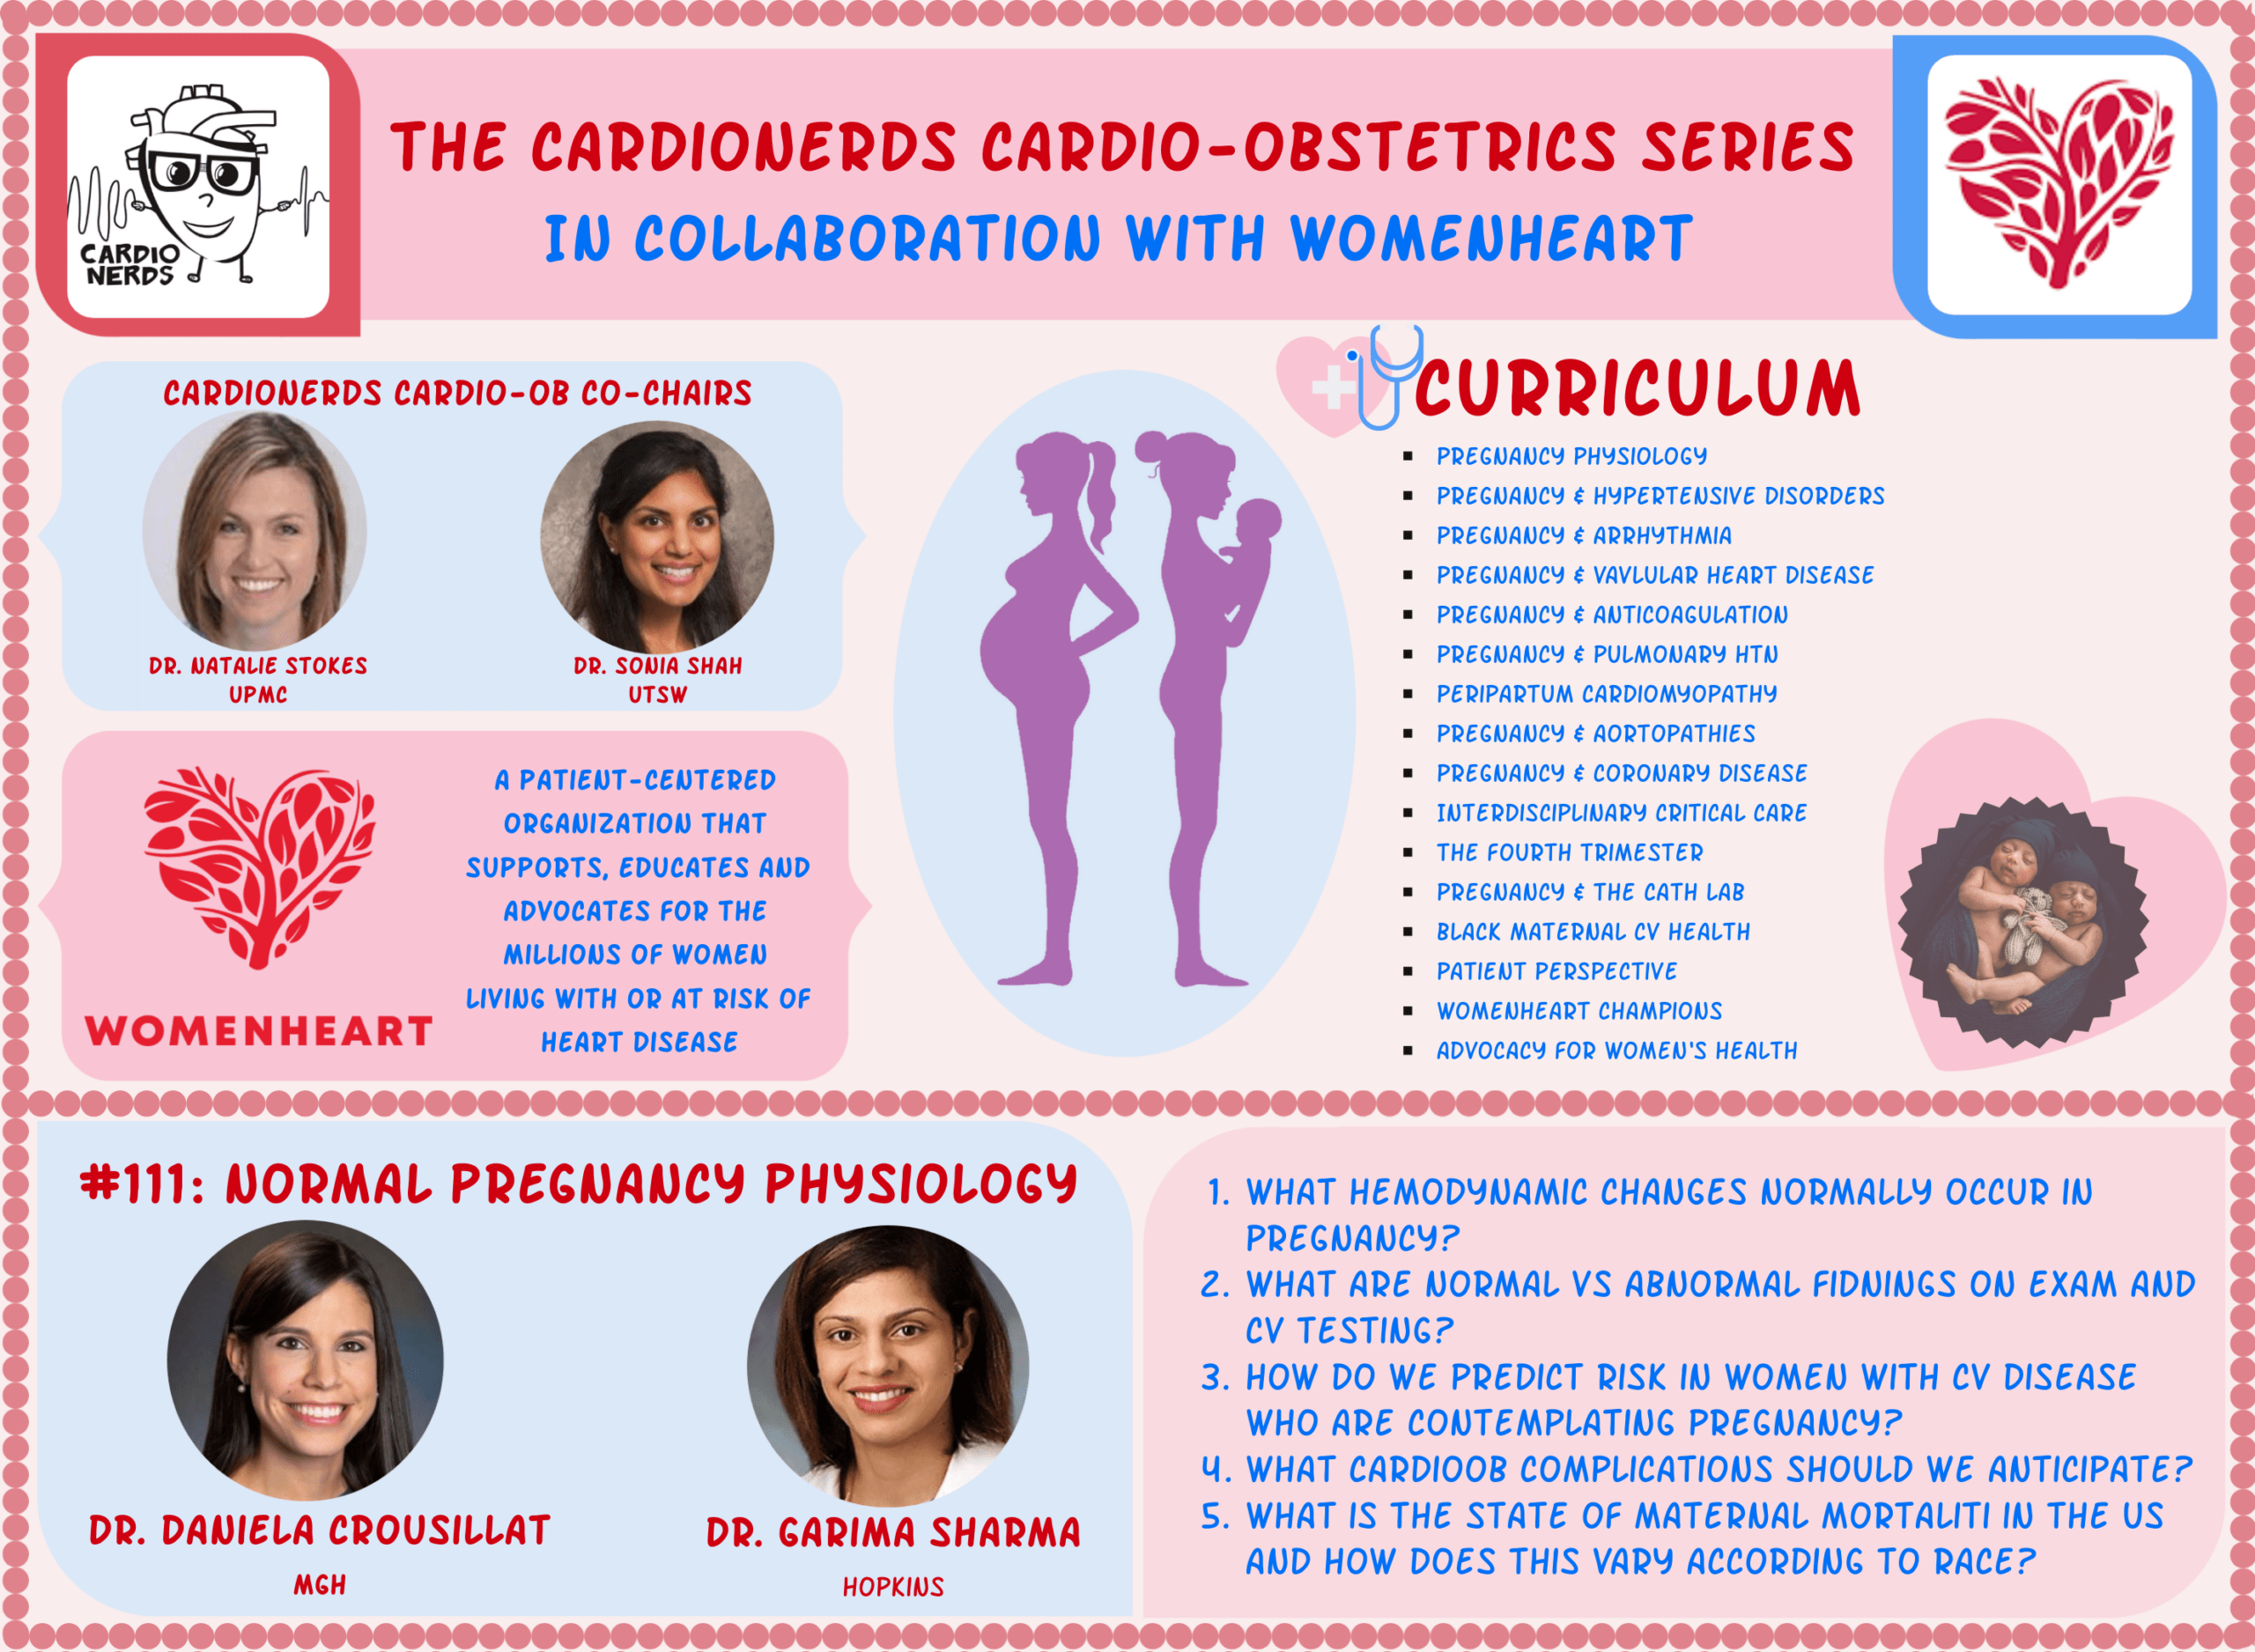 111. Cardio-Obstetrics: Normal Pregnancy Physiology with Dr. Garima Sharma